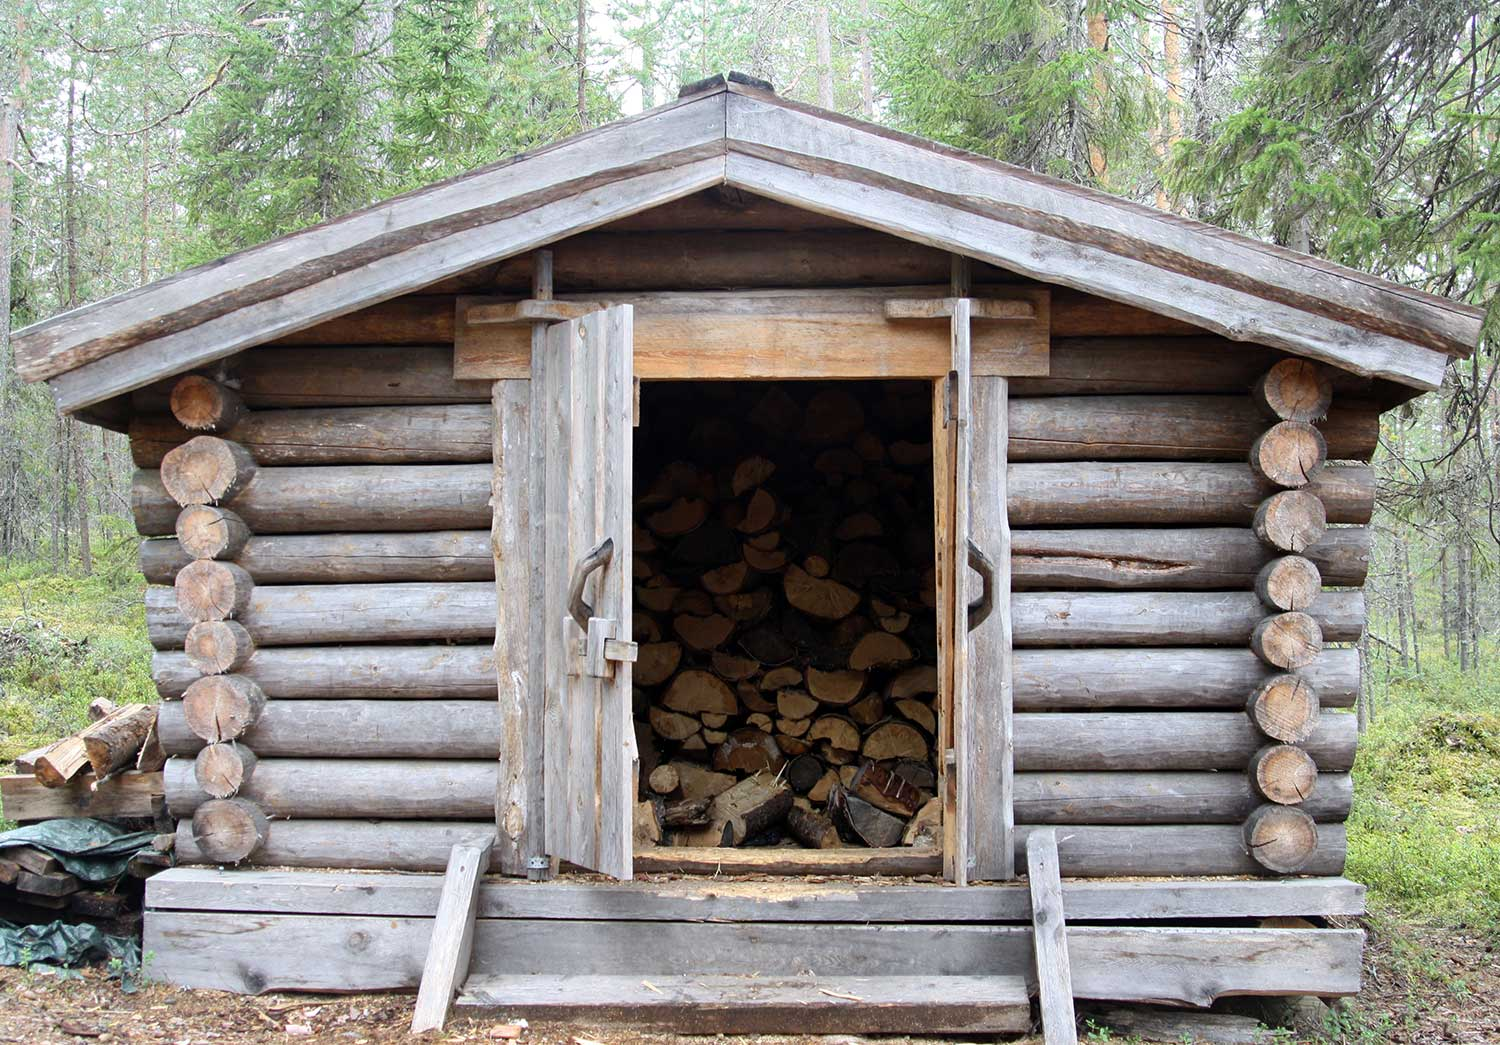 A wooden cabin for keeping firewood